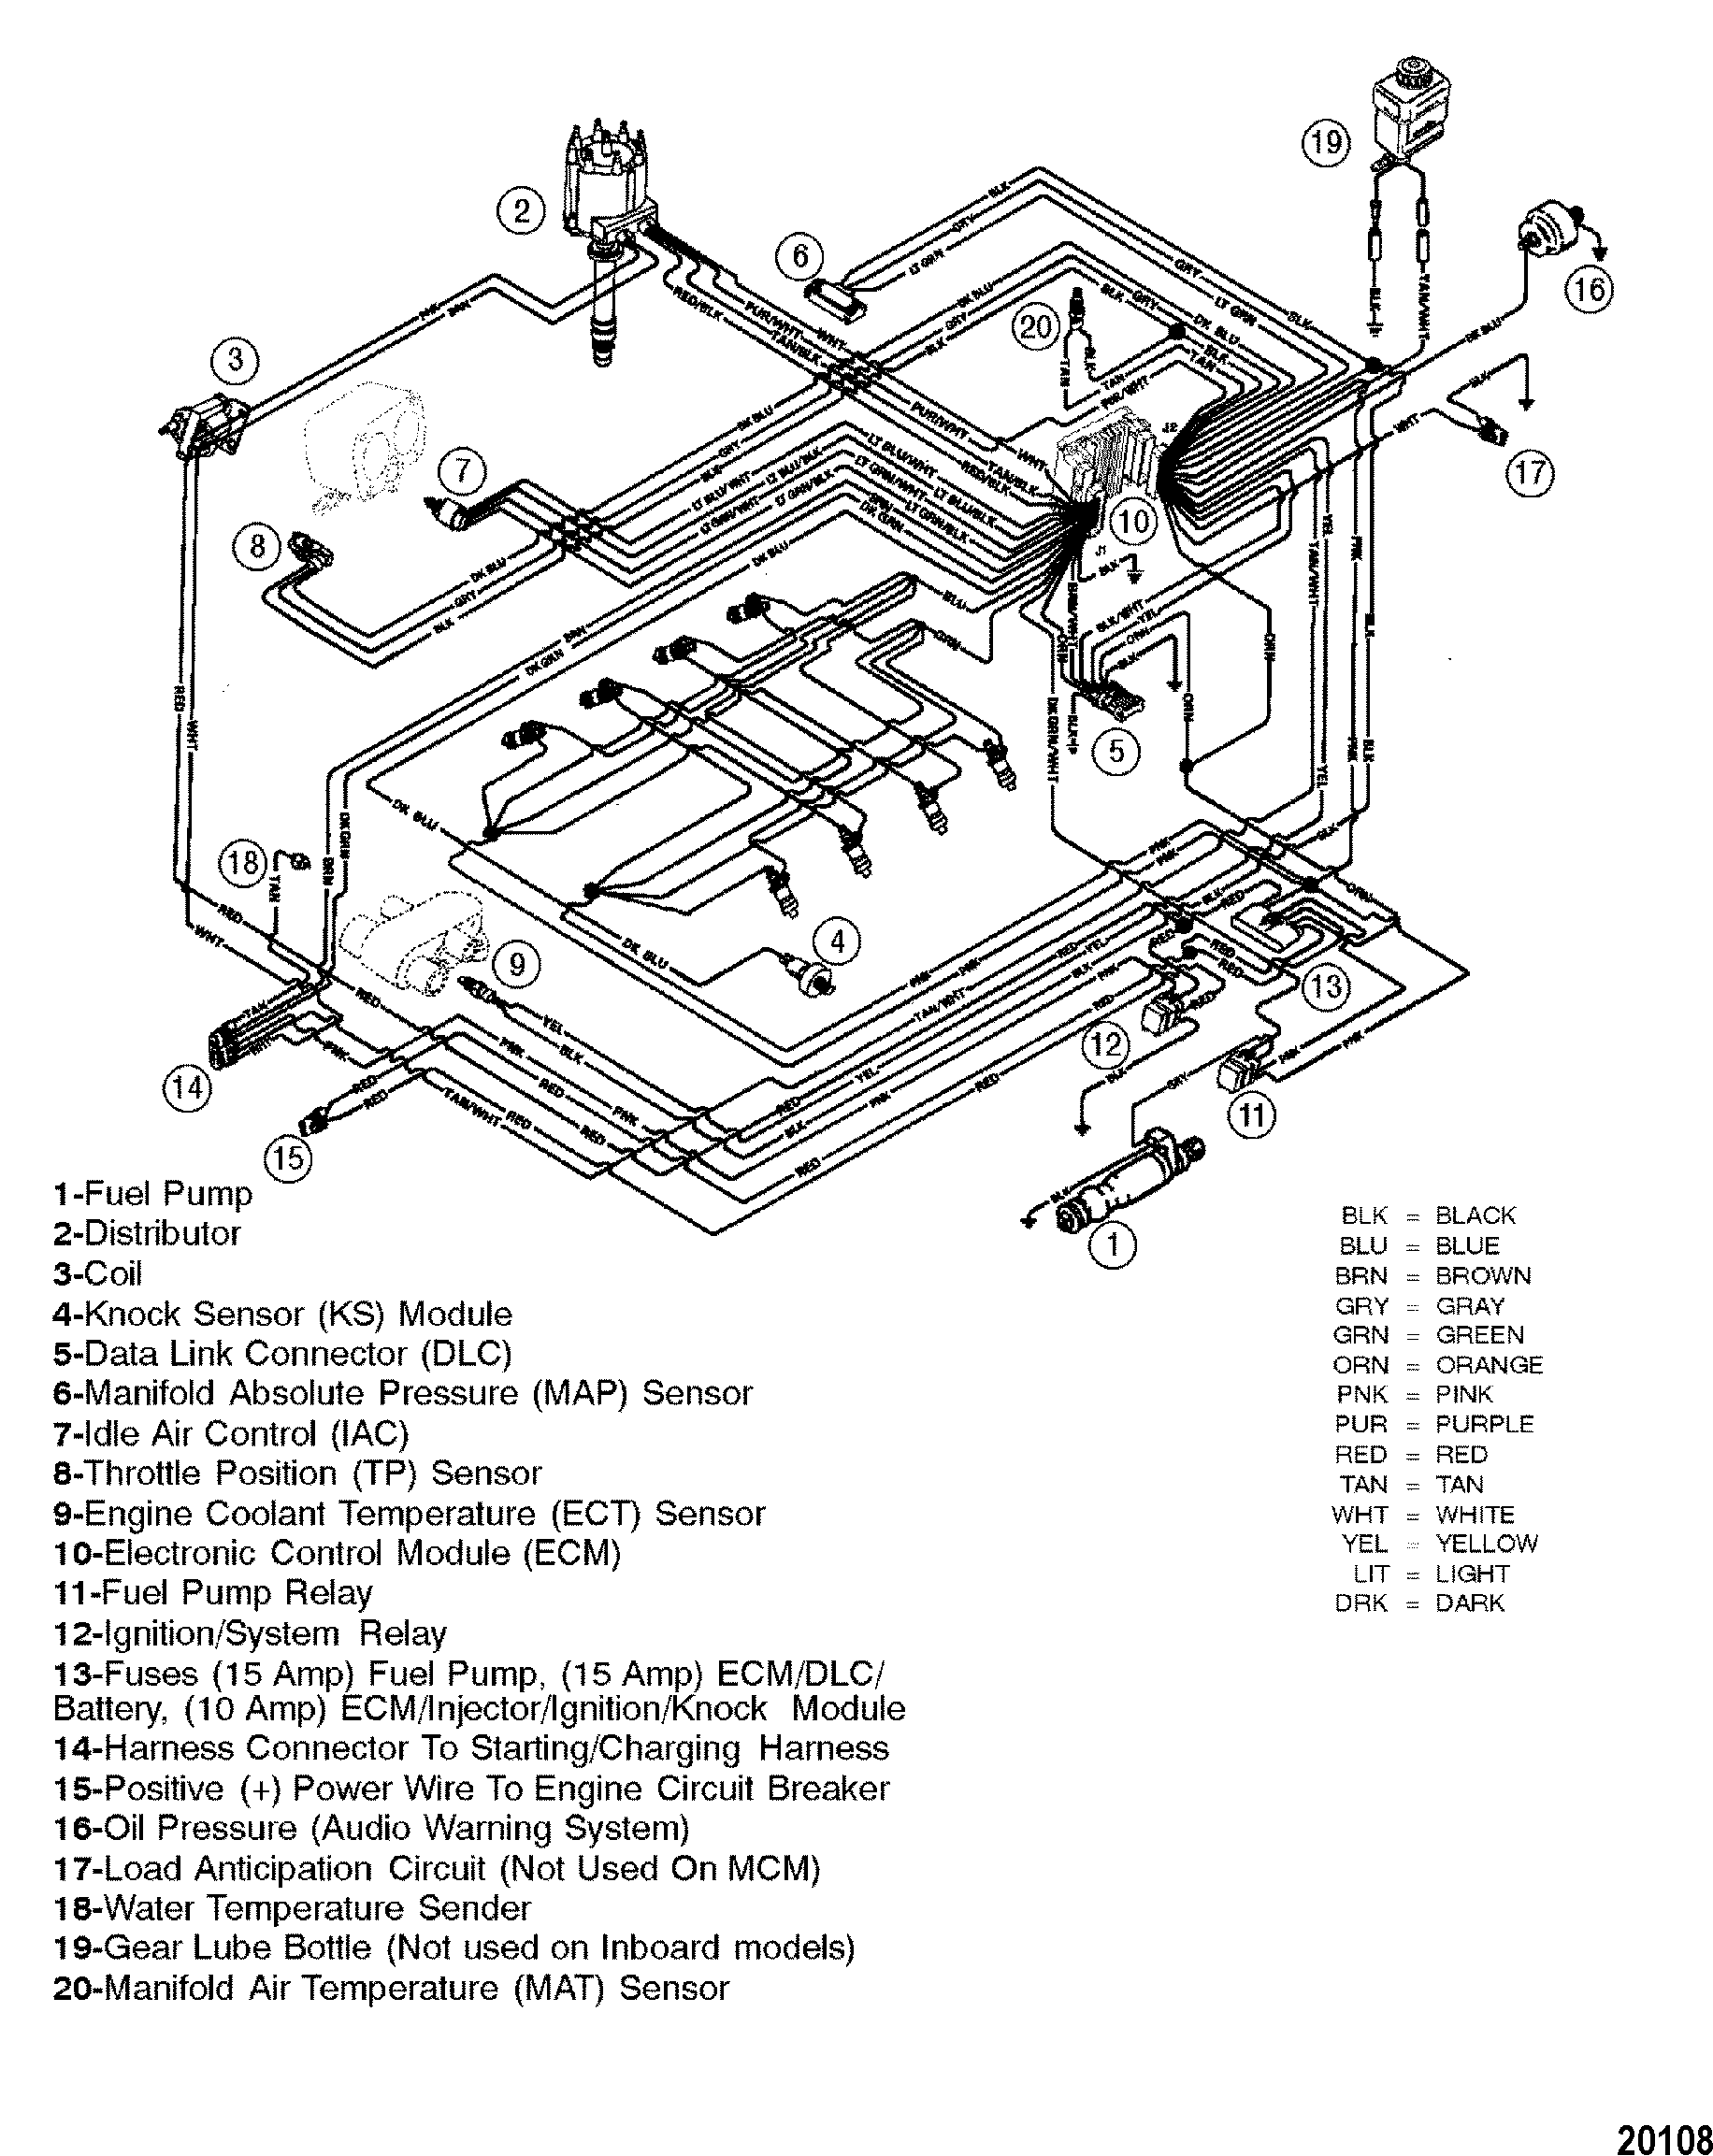 WRG-7069] V8 Vortec Engine Diagram on 1998 vortec injector diagram, 1997 5 7 vortec engine diagram, 4.2 vortec engine diagram, 1998 expedition intake manifold cover diagram, vortec intake diagram, 5.7l vortec engine diagram, v8 firing order diagram, 5.7 vortec vacuum diagram, lt1 reverse flow cooling diagram, i force v8 5 7 litre engine diagram, corvette v8 engine diagram, 7.4 vortec motor diagram, v8 chevy engine rotation diagram, 53 vortec engine diagram, chevy vortec engine diagram, 5.3 vortec diagram, 302 v8 engine diagram, gmc 4.2l vortec engine diagram, 4.3 l vortec engine diagram, vortec 4200 engine diagram,